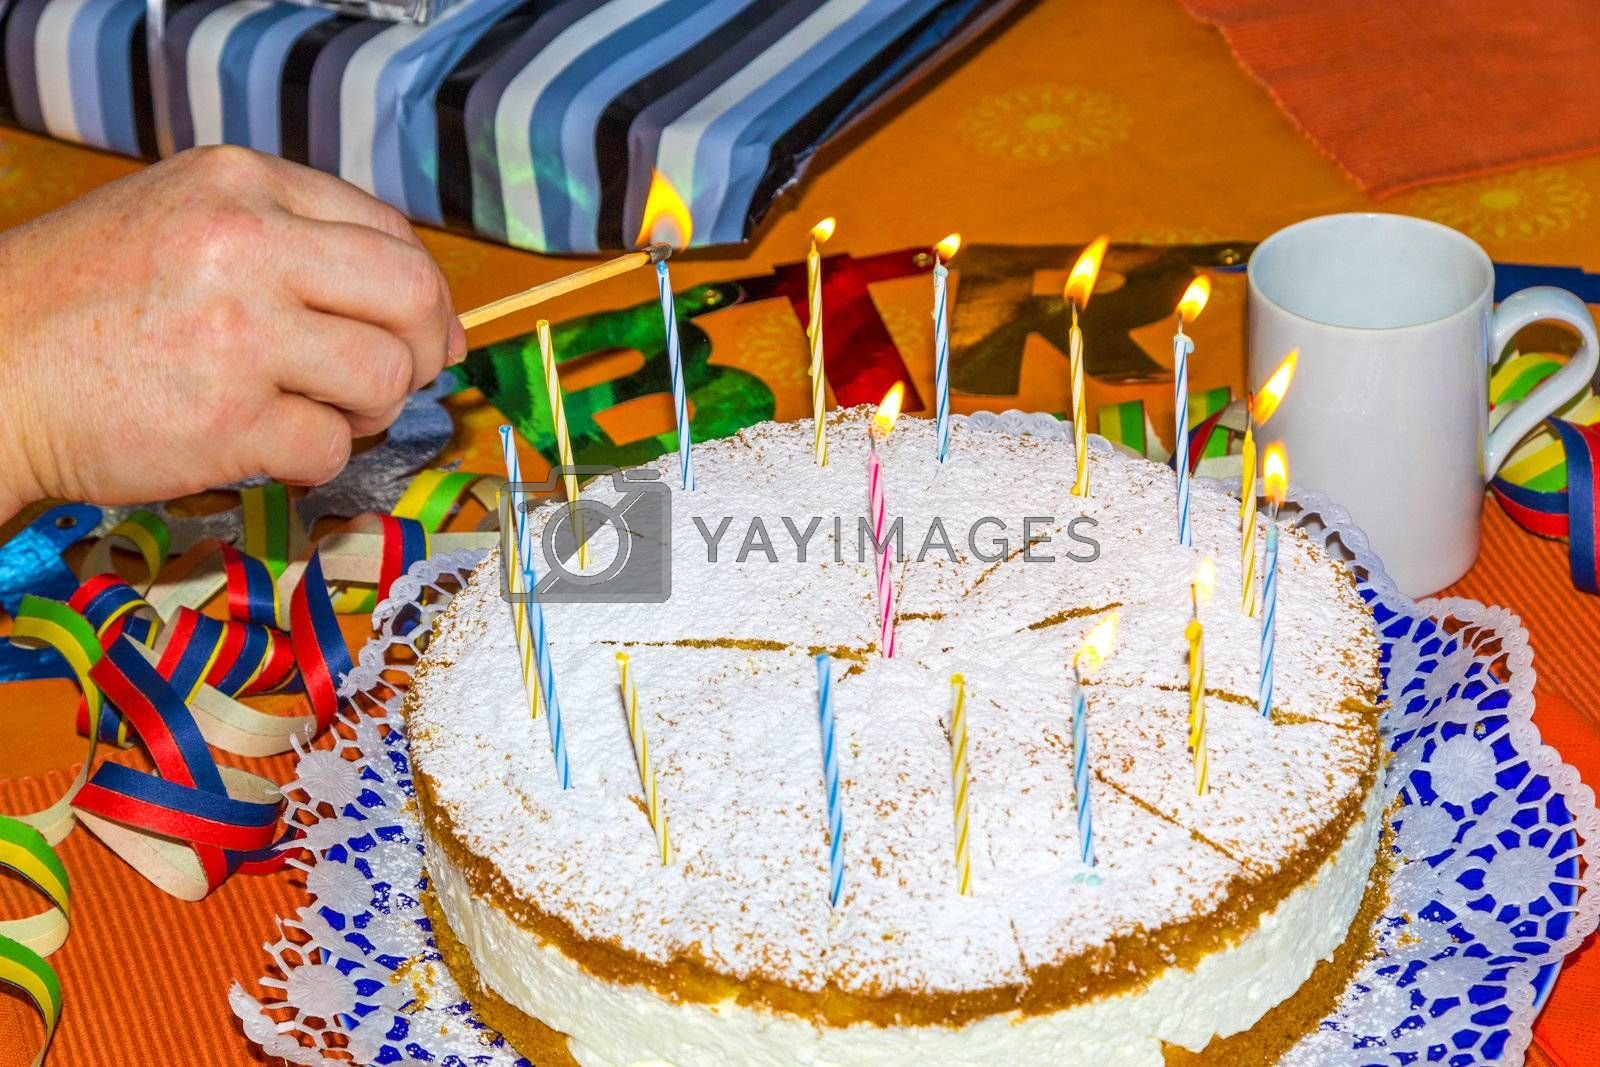 lighting the birthday candles on the cake